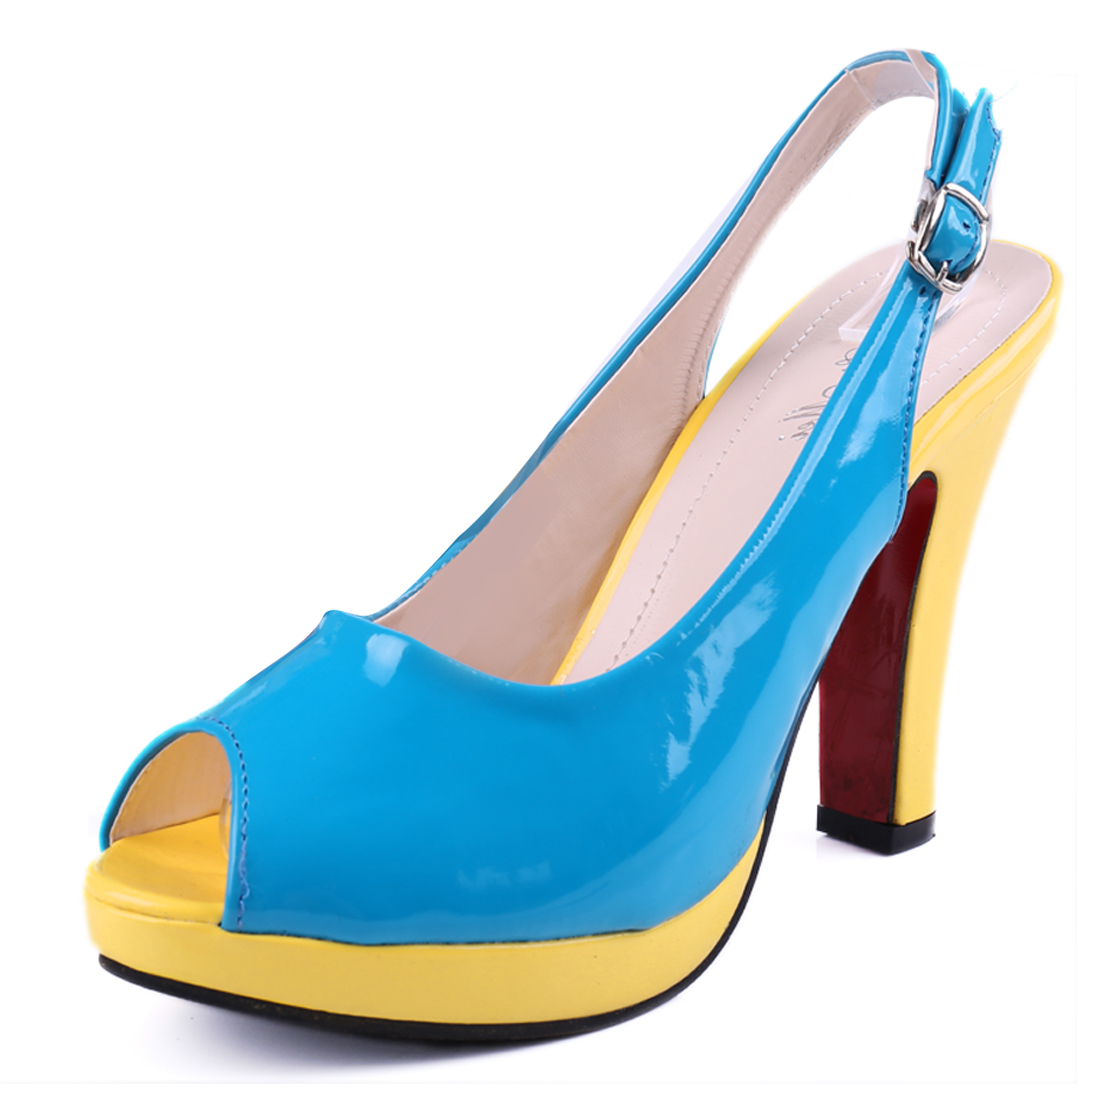 Women Open Toe Design Contrast Color Blue Yellow Sandals Pumps US 6.5